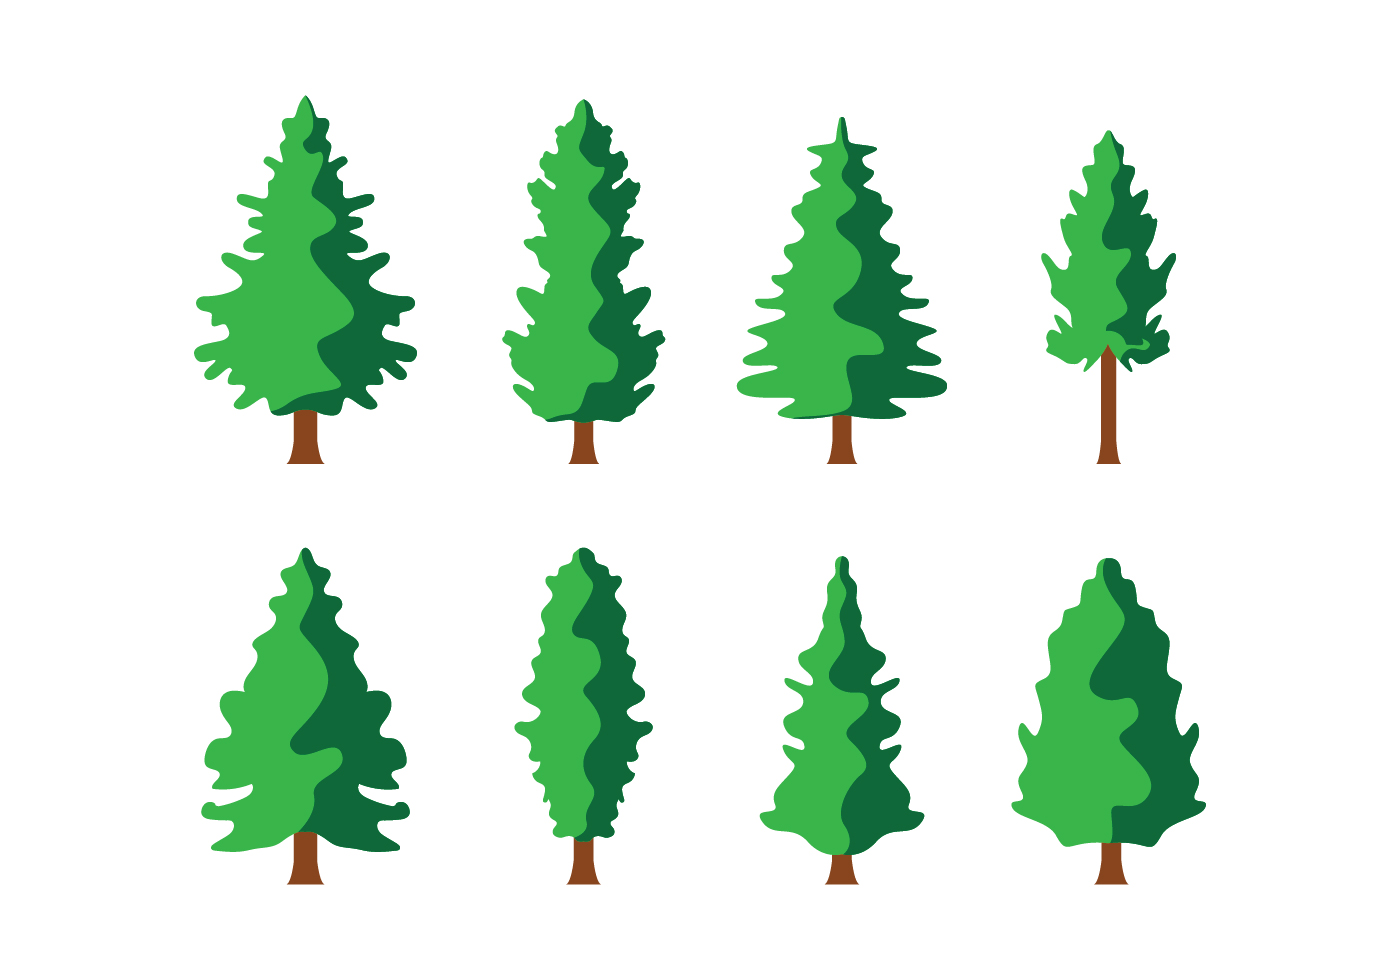 Pine Tree Free Vector Art - (6237 Free Downloads)